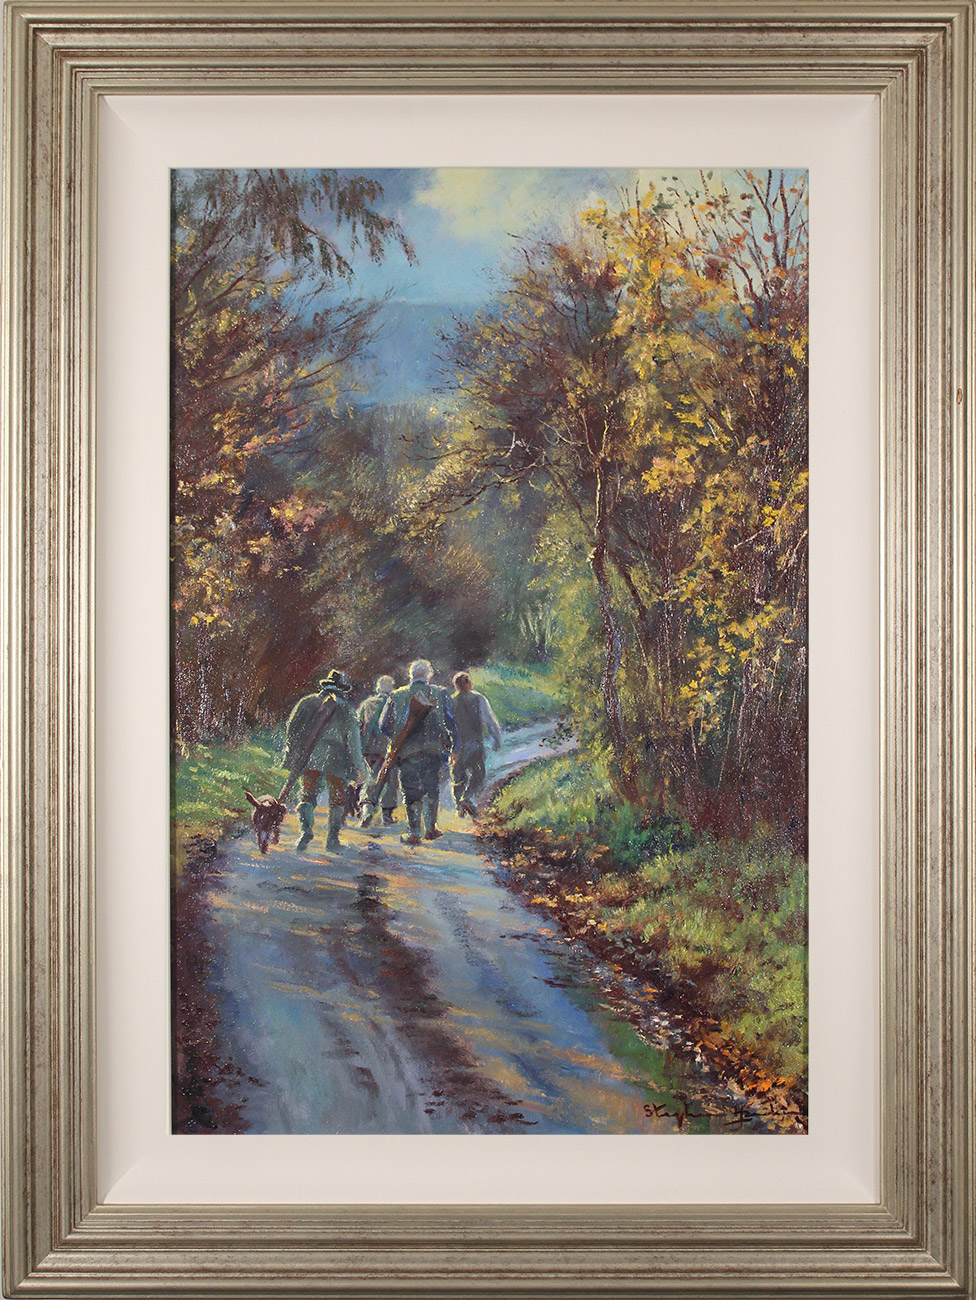 Stephen Hawkins, Original oil painting on canvas, An Early Start Click to enlarge